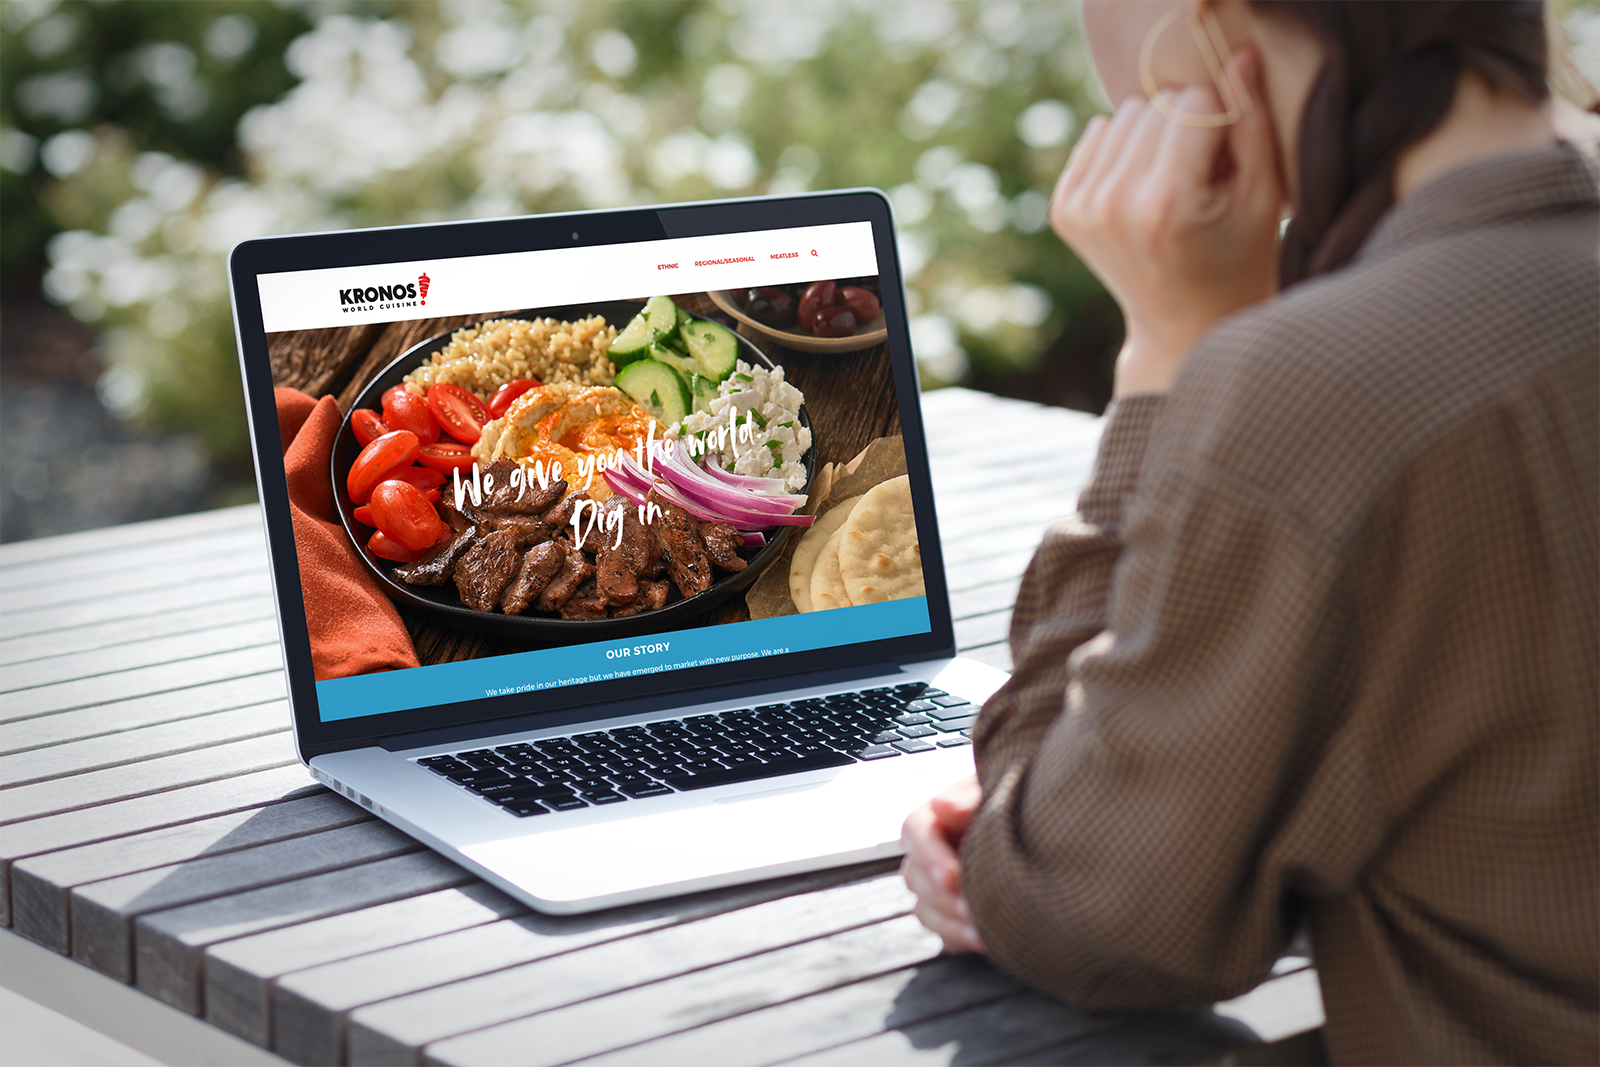 Microsite design for Kronos to explore/explain their new world cuisine